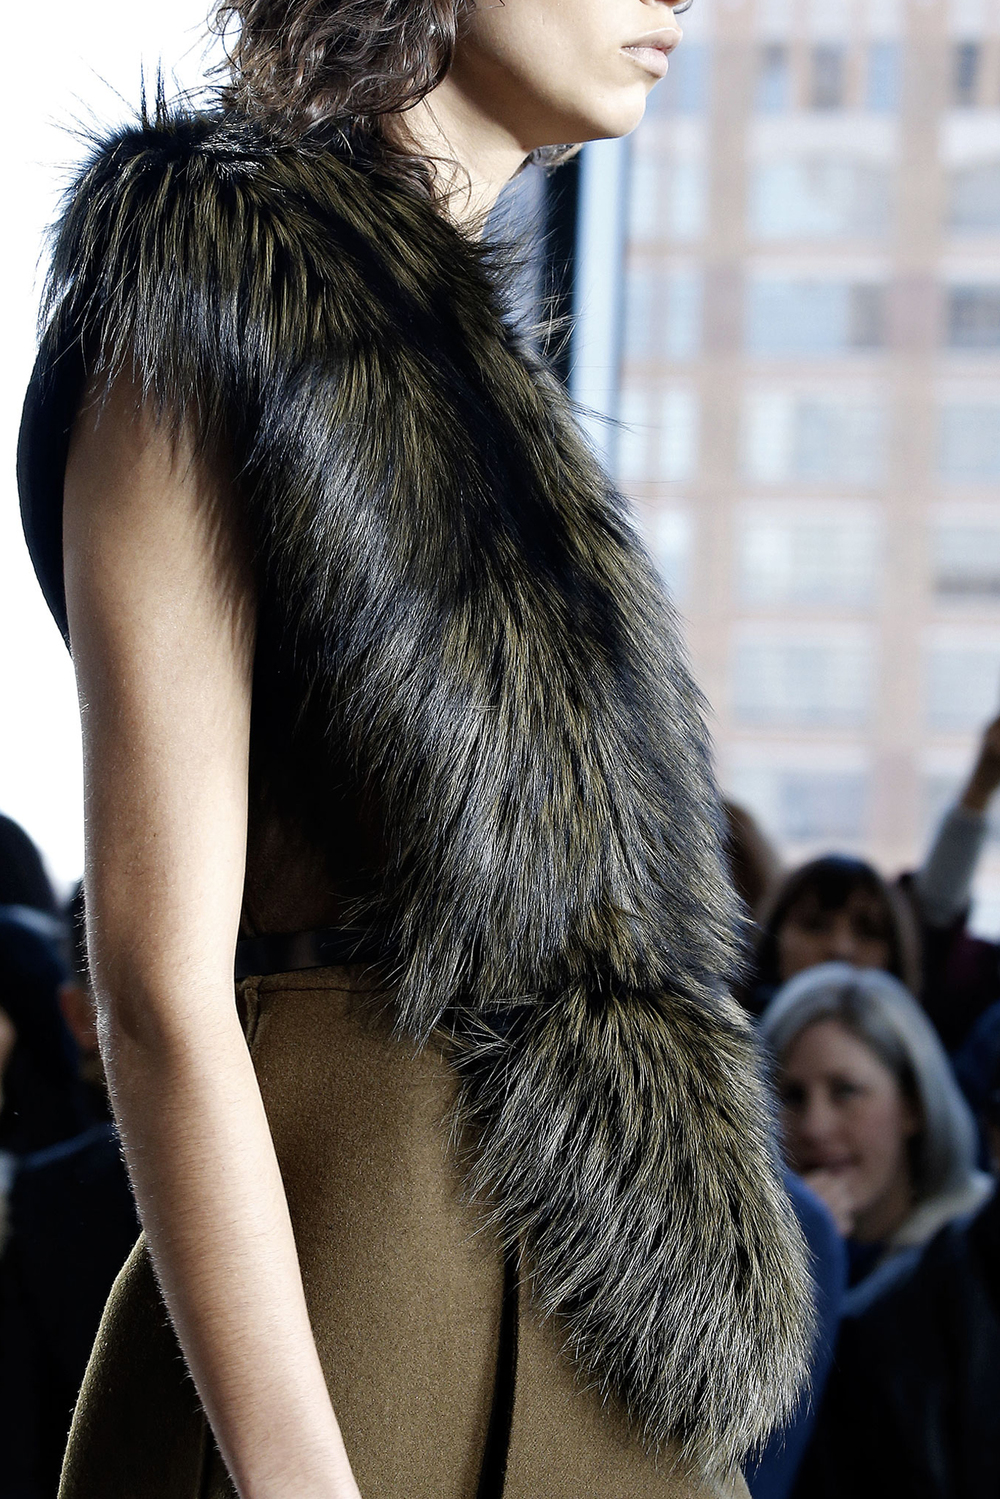 35-jason-wu-fur.jpg